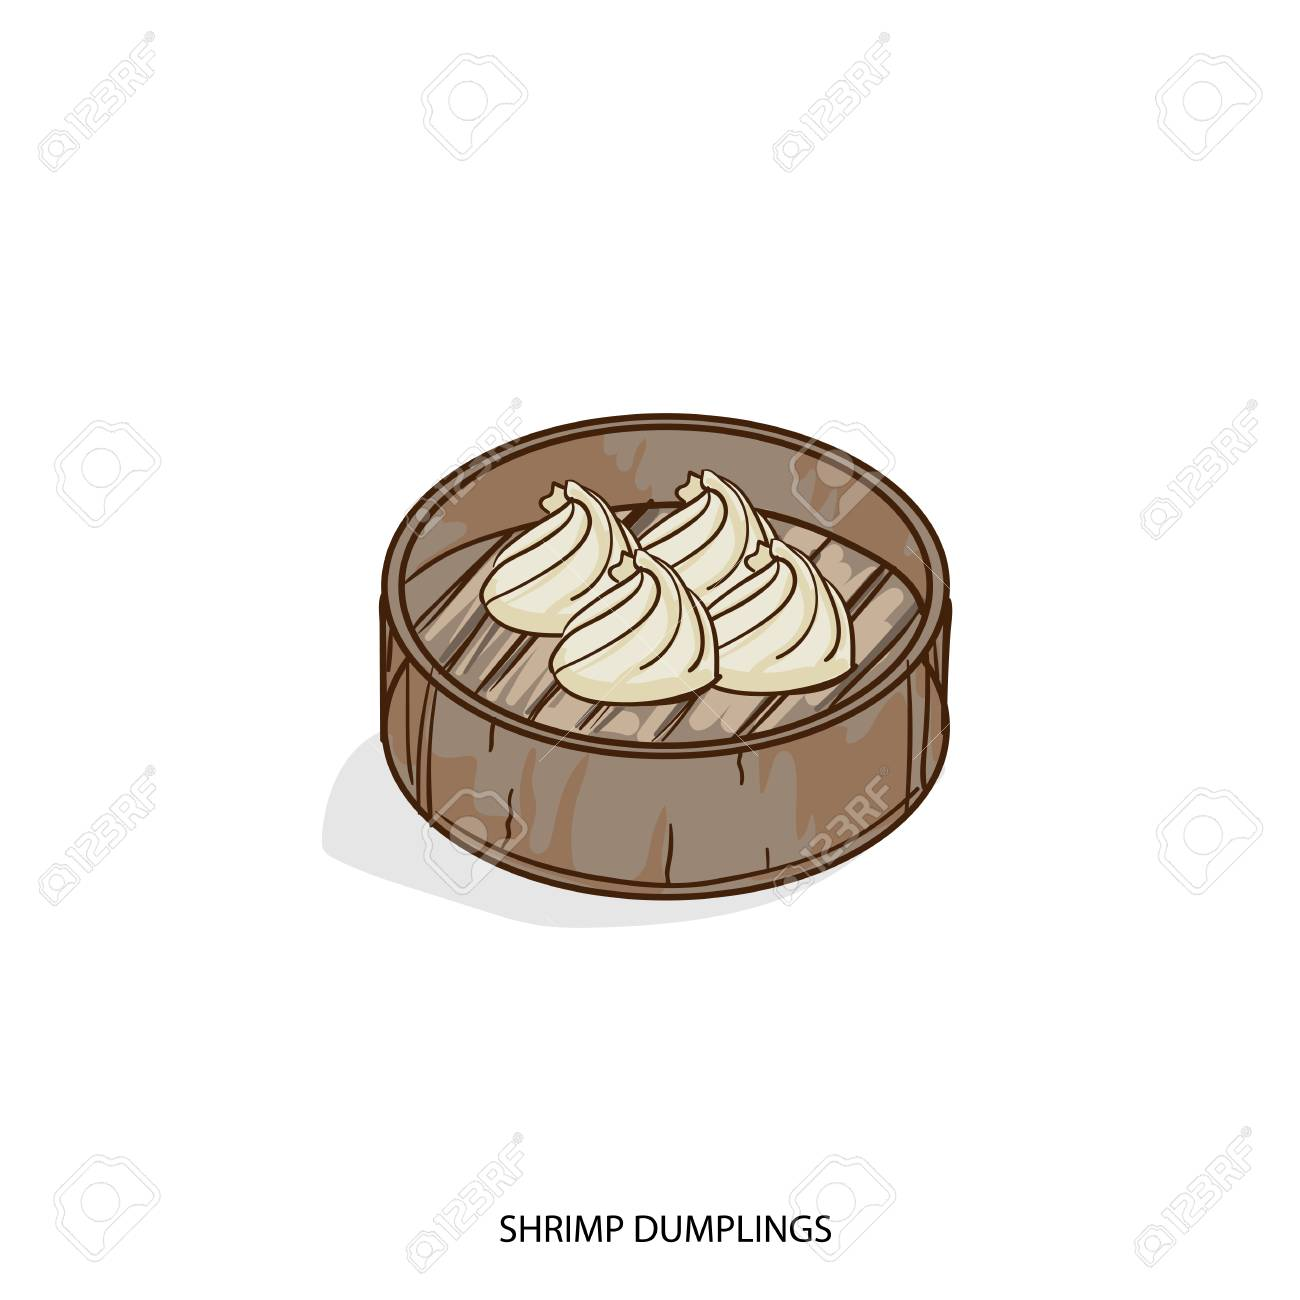 A Chinese Food Shrimp Dumplings Object Hand Drawing On White Royalty Free Cliparts Vectors And Stock Illustration Image 87691687